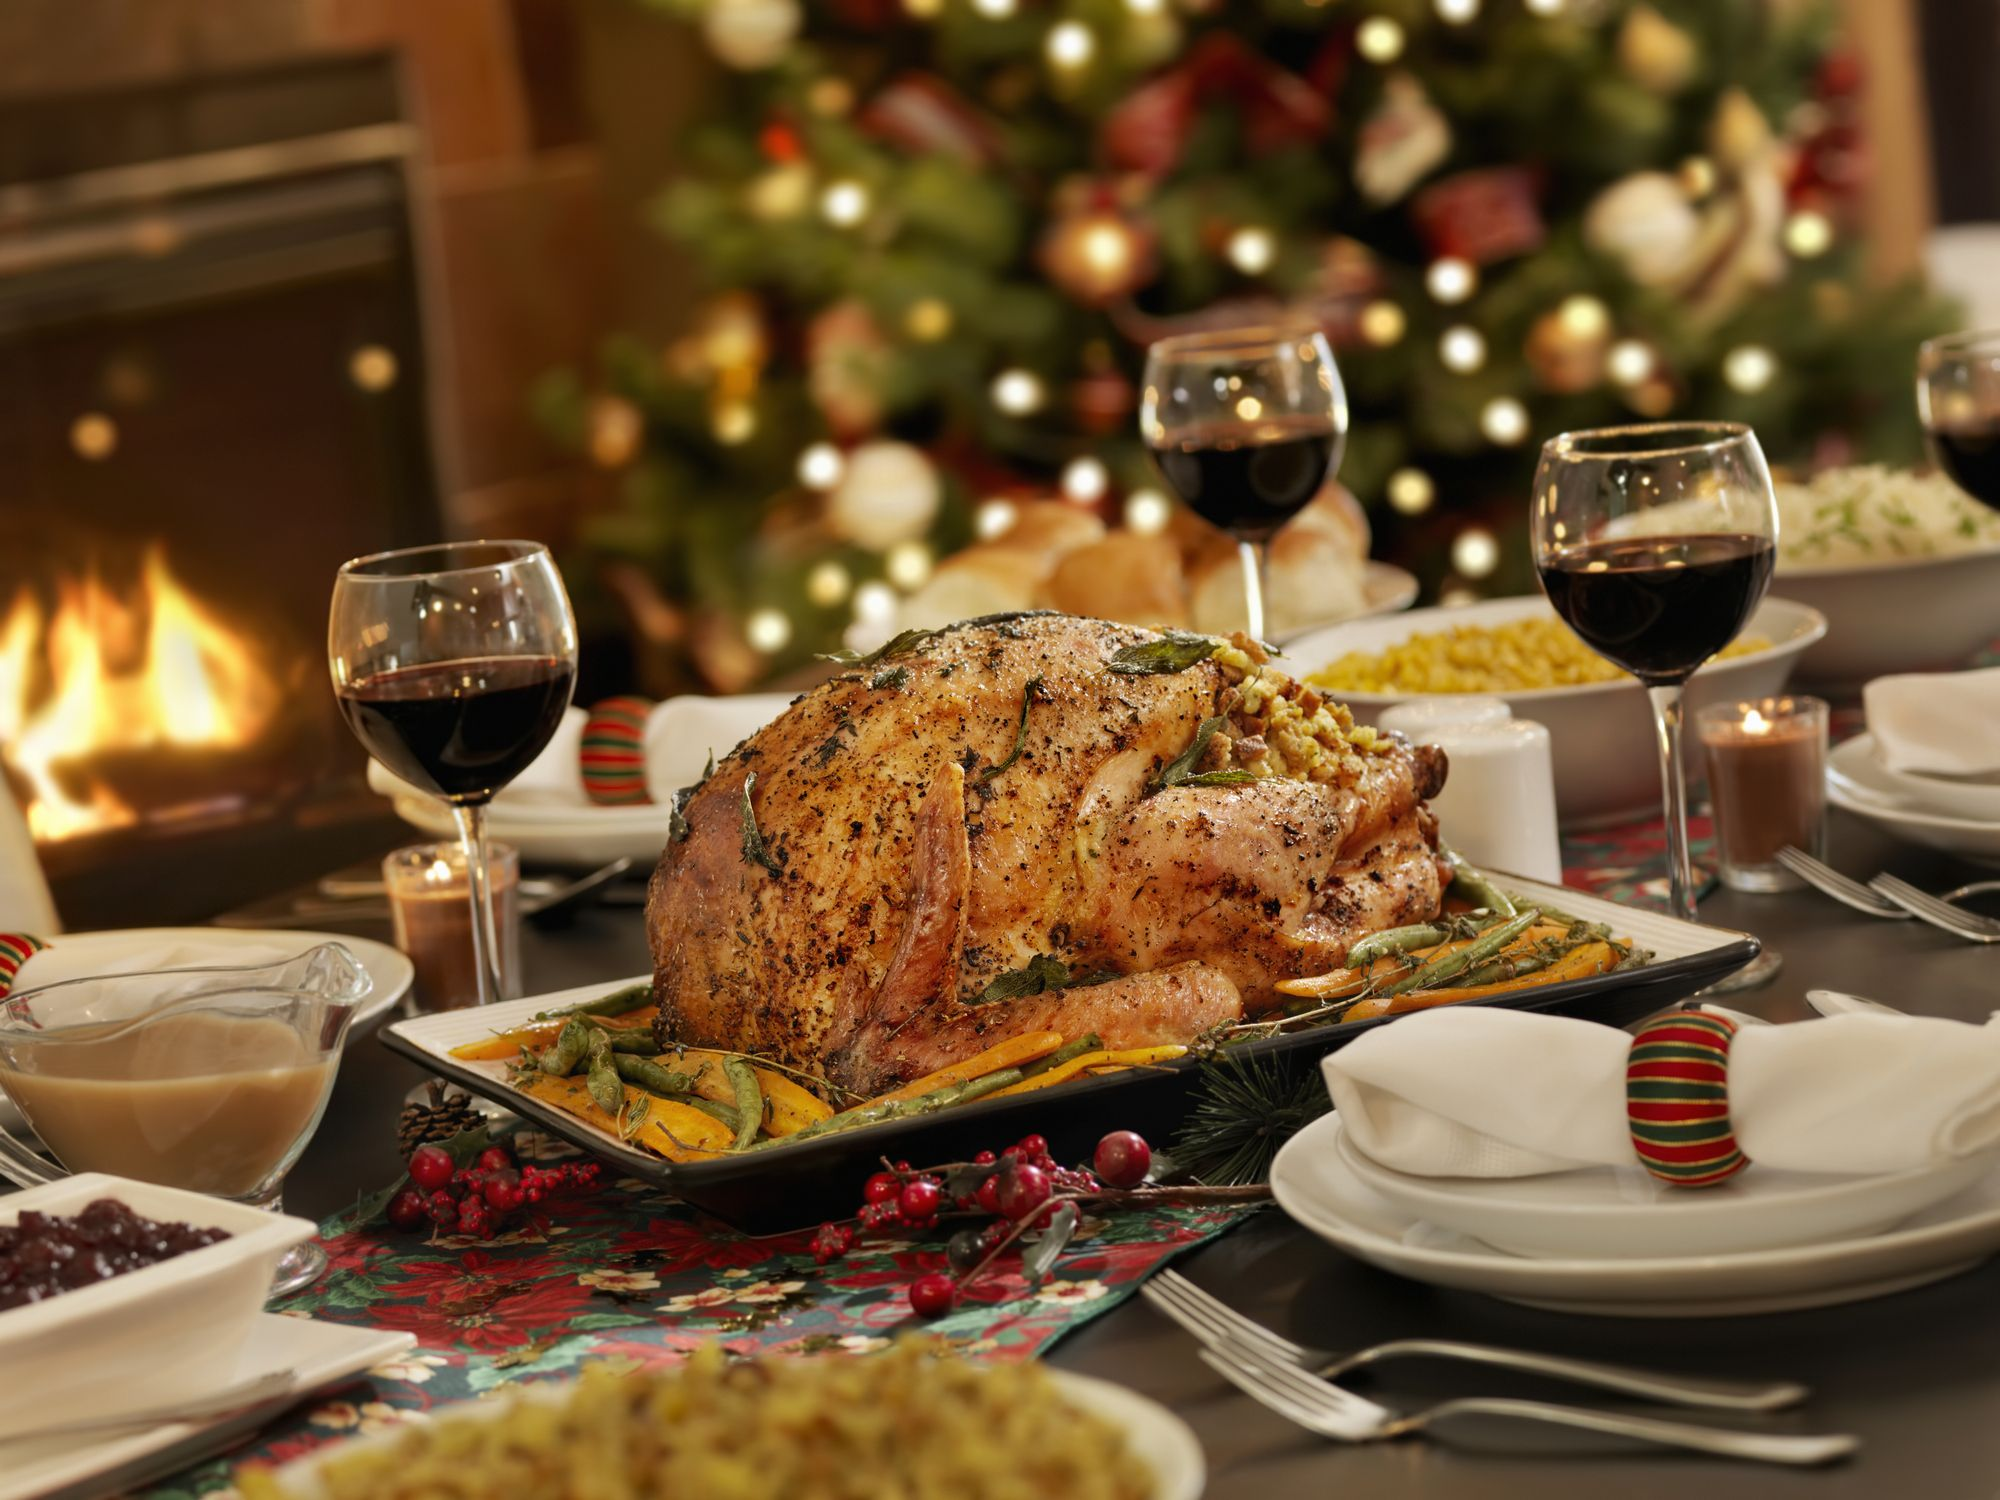 Roast turkey with boozy prune and rye bread stuffing and gravy